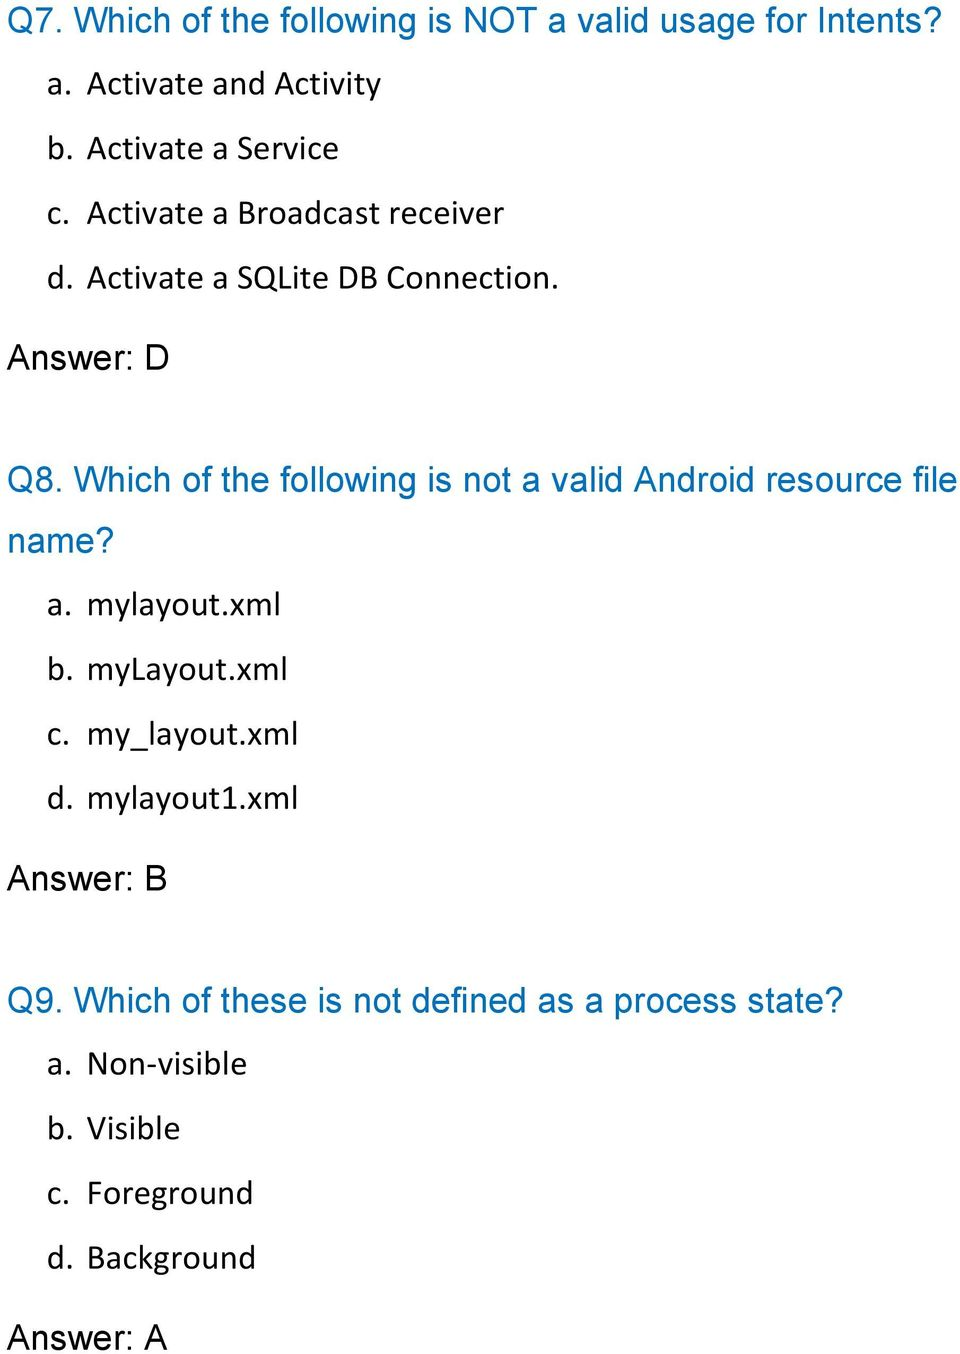 Q1  What method you should override to use Android menu